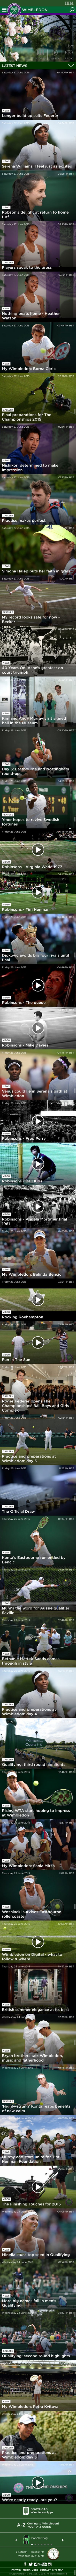 Wimbledon Open 2015 Website (Responsive). Simple with a strong brand presence. Consistency throughout the grid. #website #design #wimbledon #ui